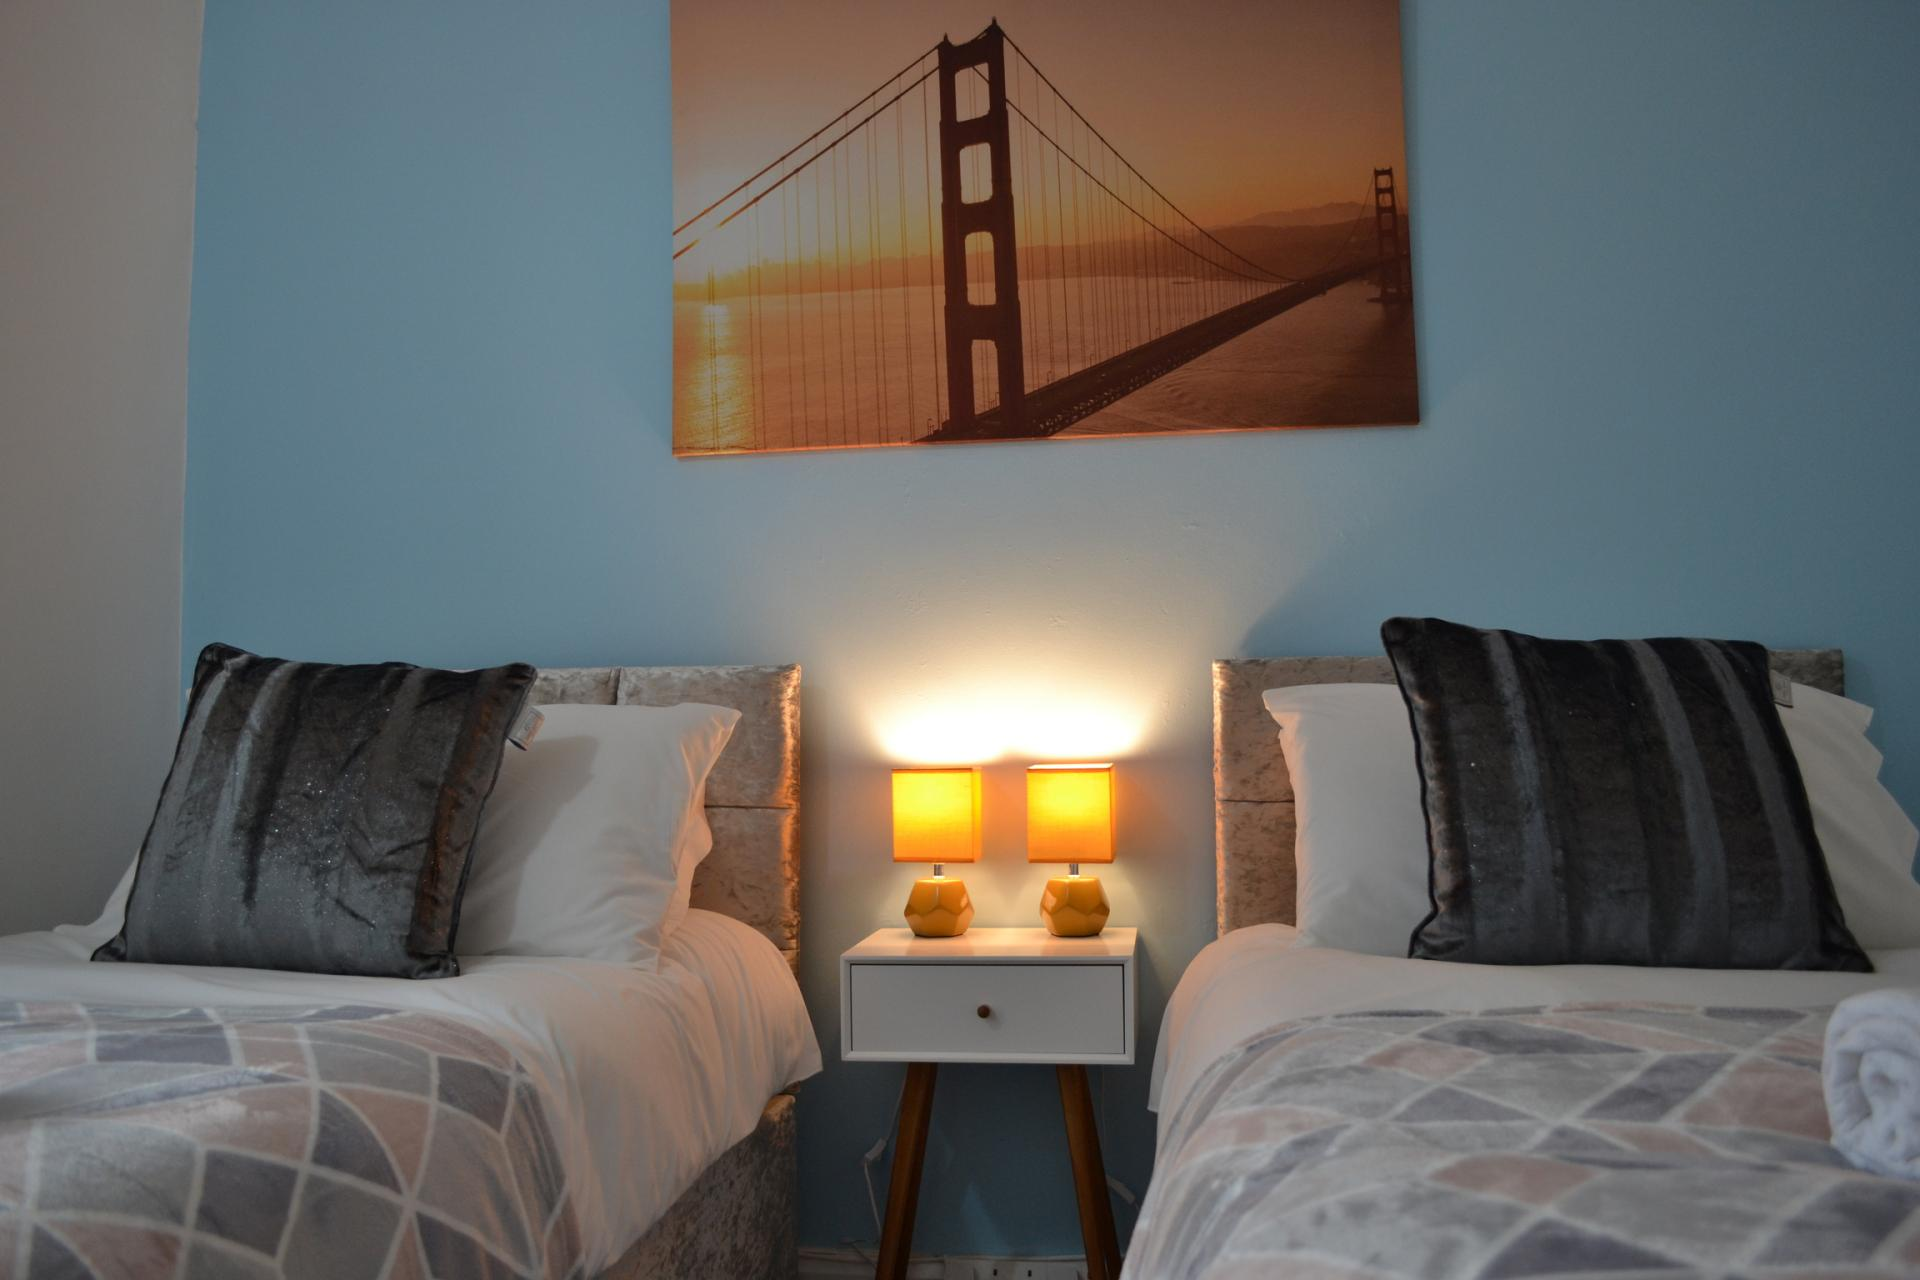 Twin beds at Kendal Way Home, Chesterton, Cambridge - Citybase Apartments